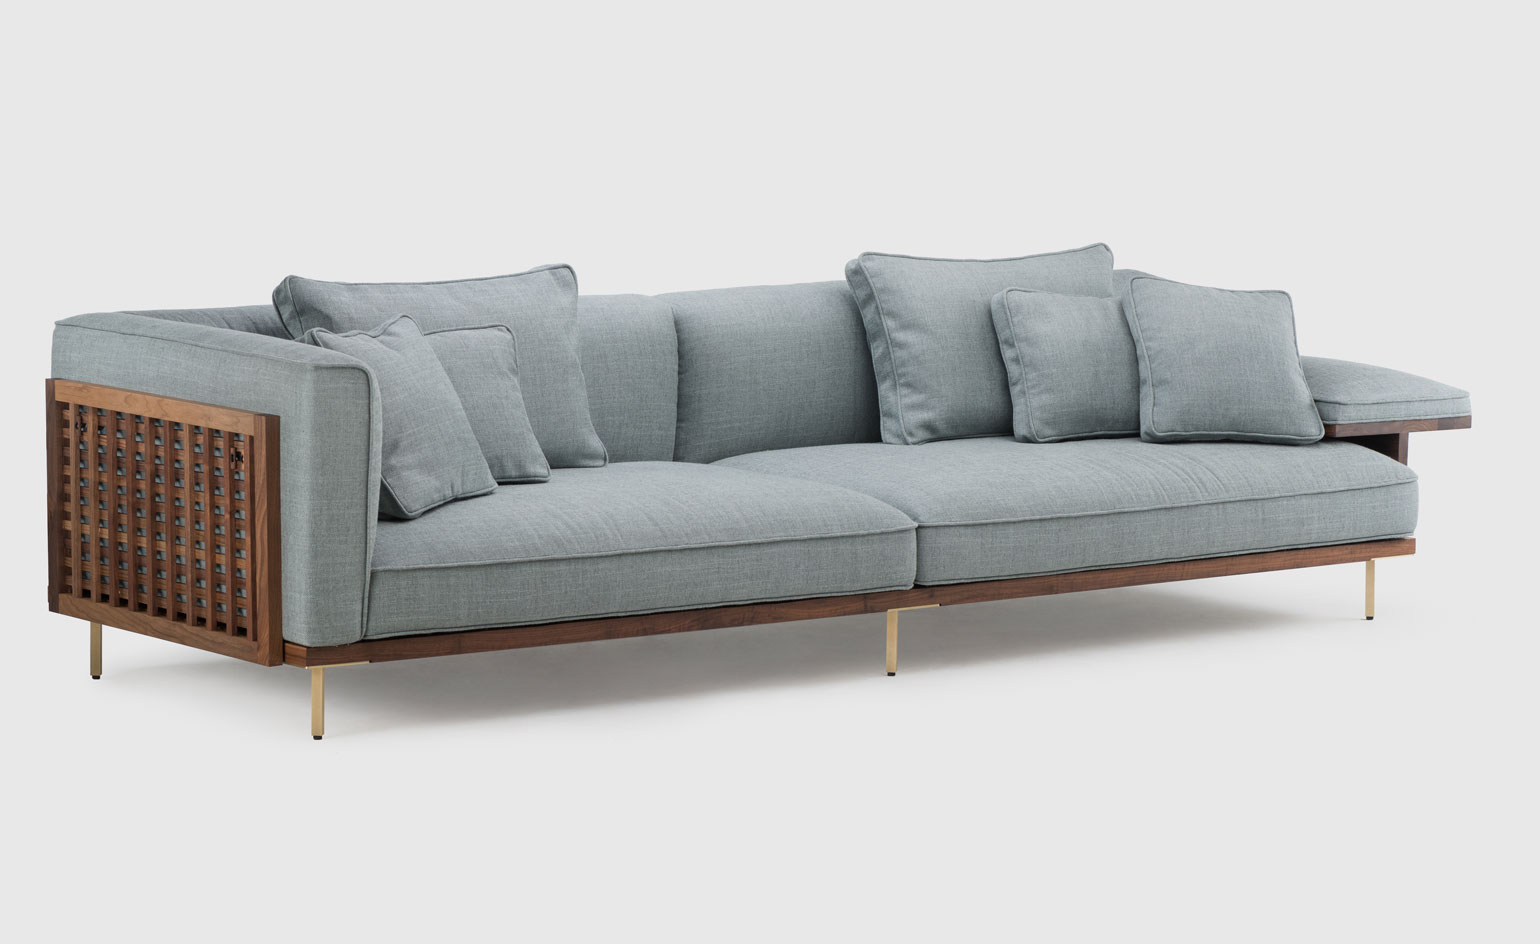 Top 5 picks at Stockholm Furniture Fair   Wallpaper      a coveted list of talents  Luca Nichetto  sofa pictured   Neri   Hu   Matthew Hilton and Jason Miller this year  The Portuguese furniture brand  aimed to